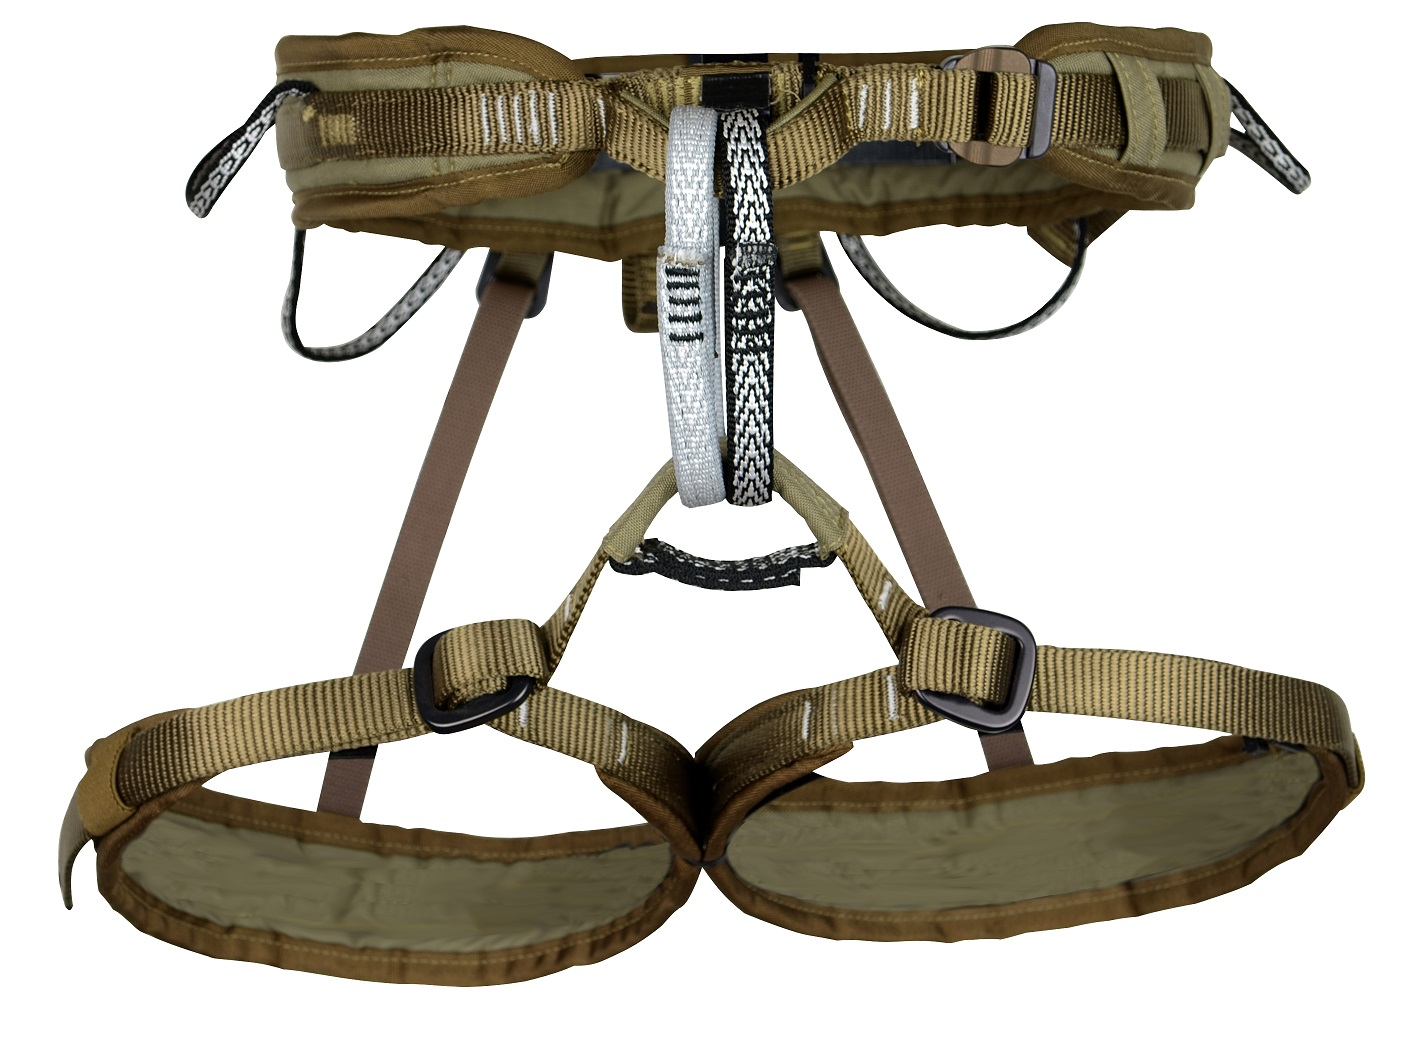 Metolius Safe Tech Patriot